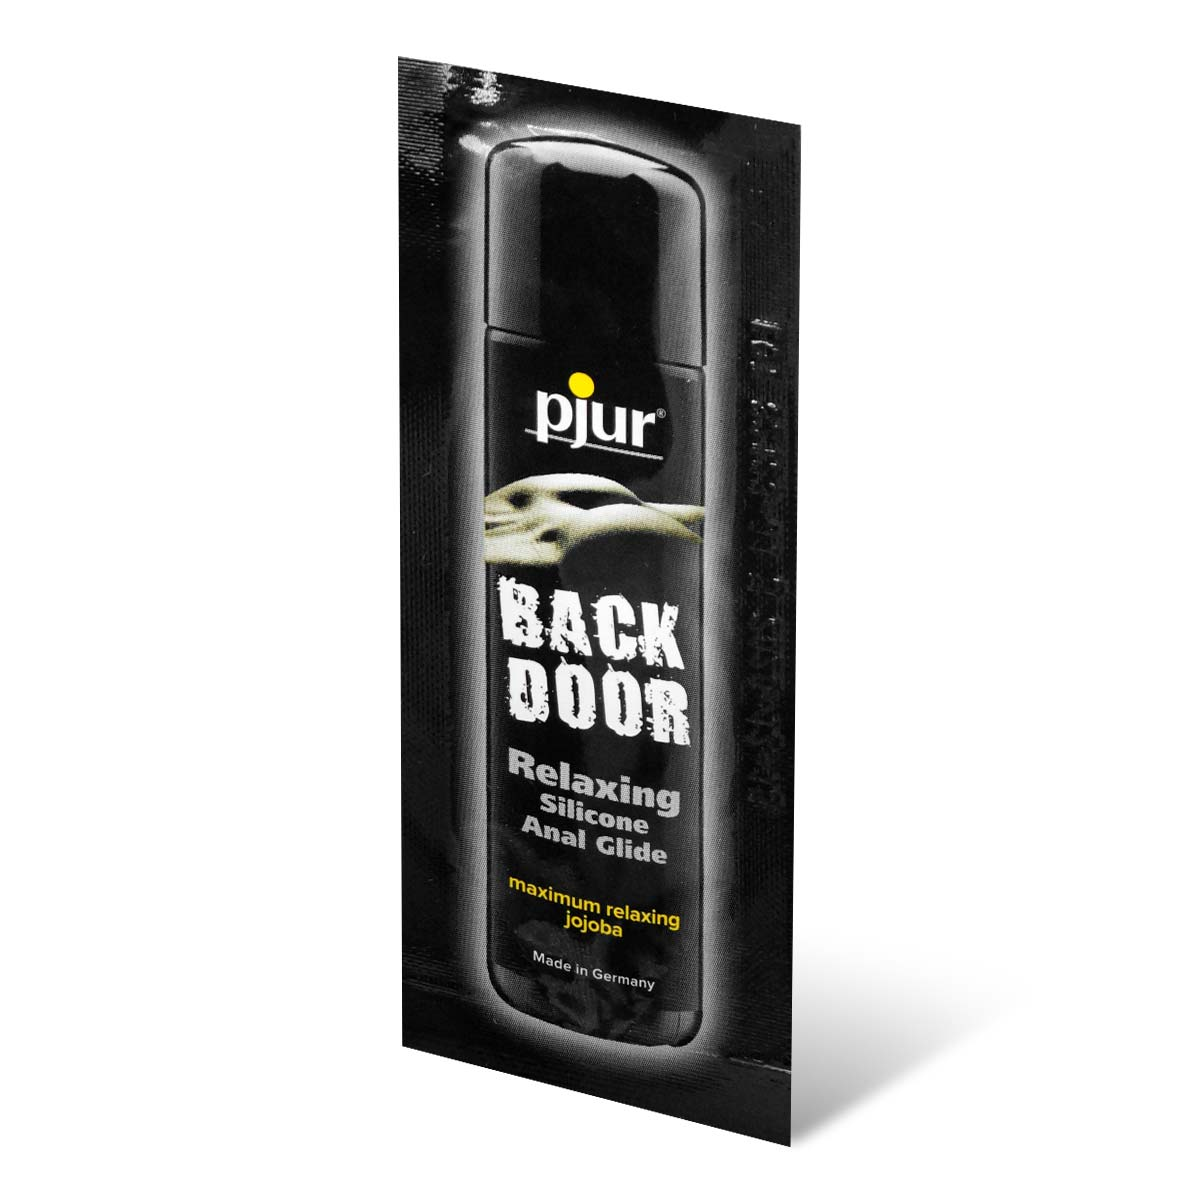 pjur BACK DOOR RELAXING Silicone Anal Glide 1.5ml Silicone-based Lubricant